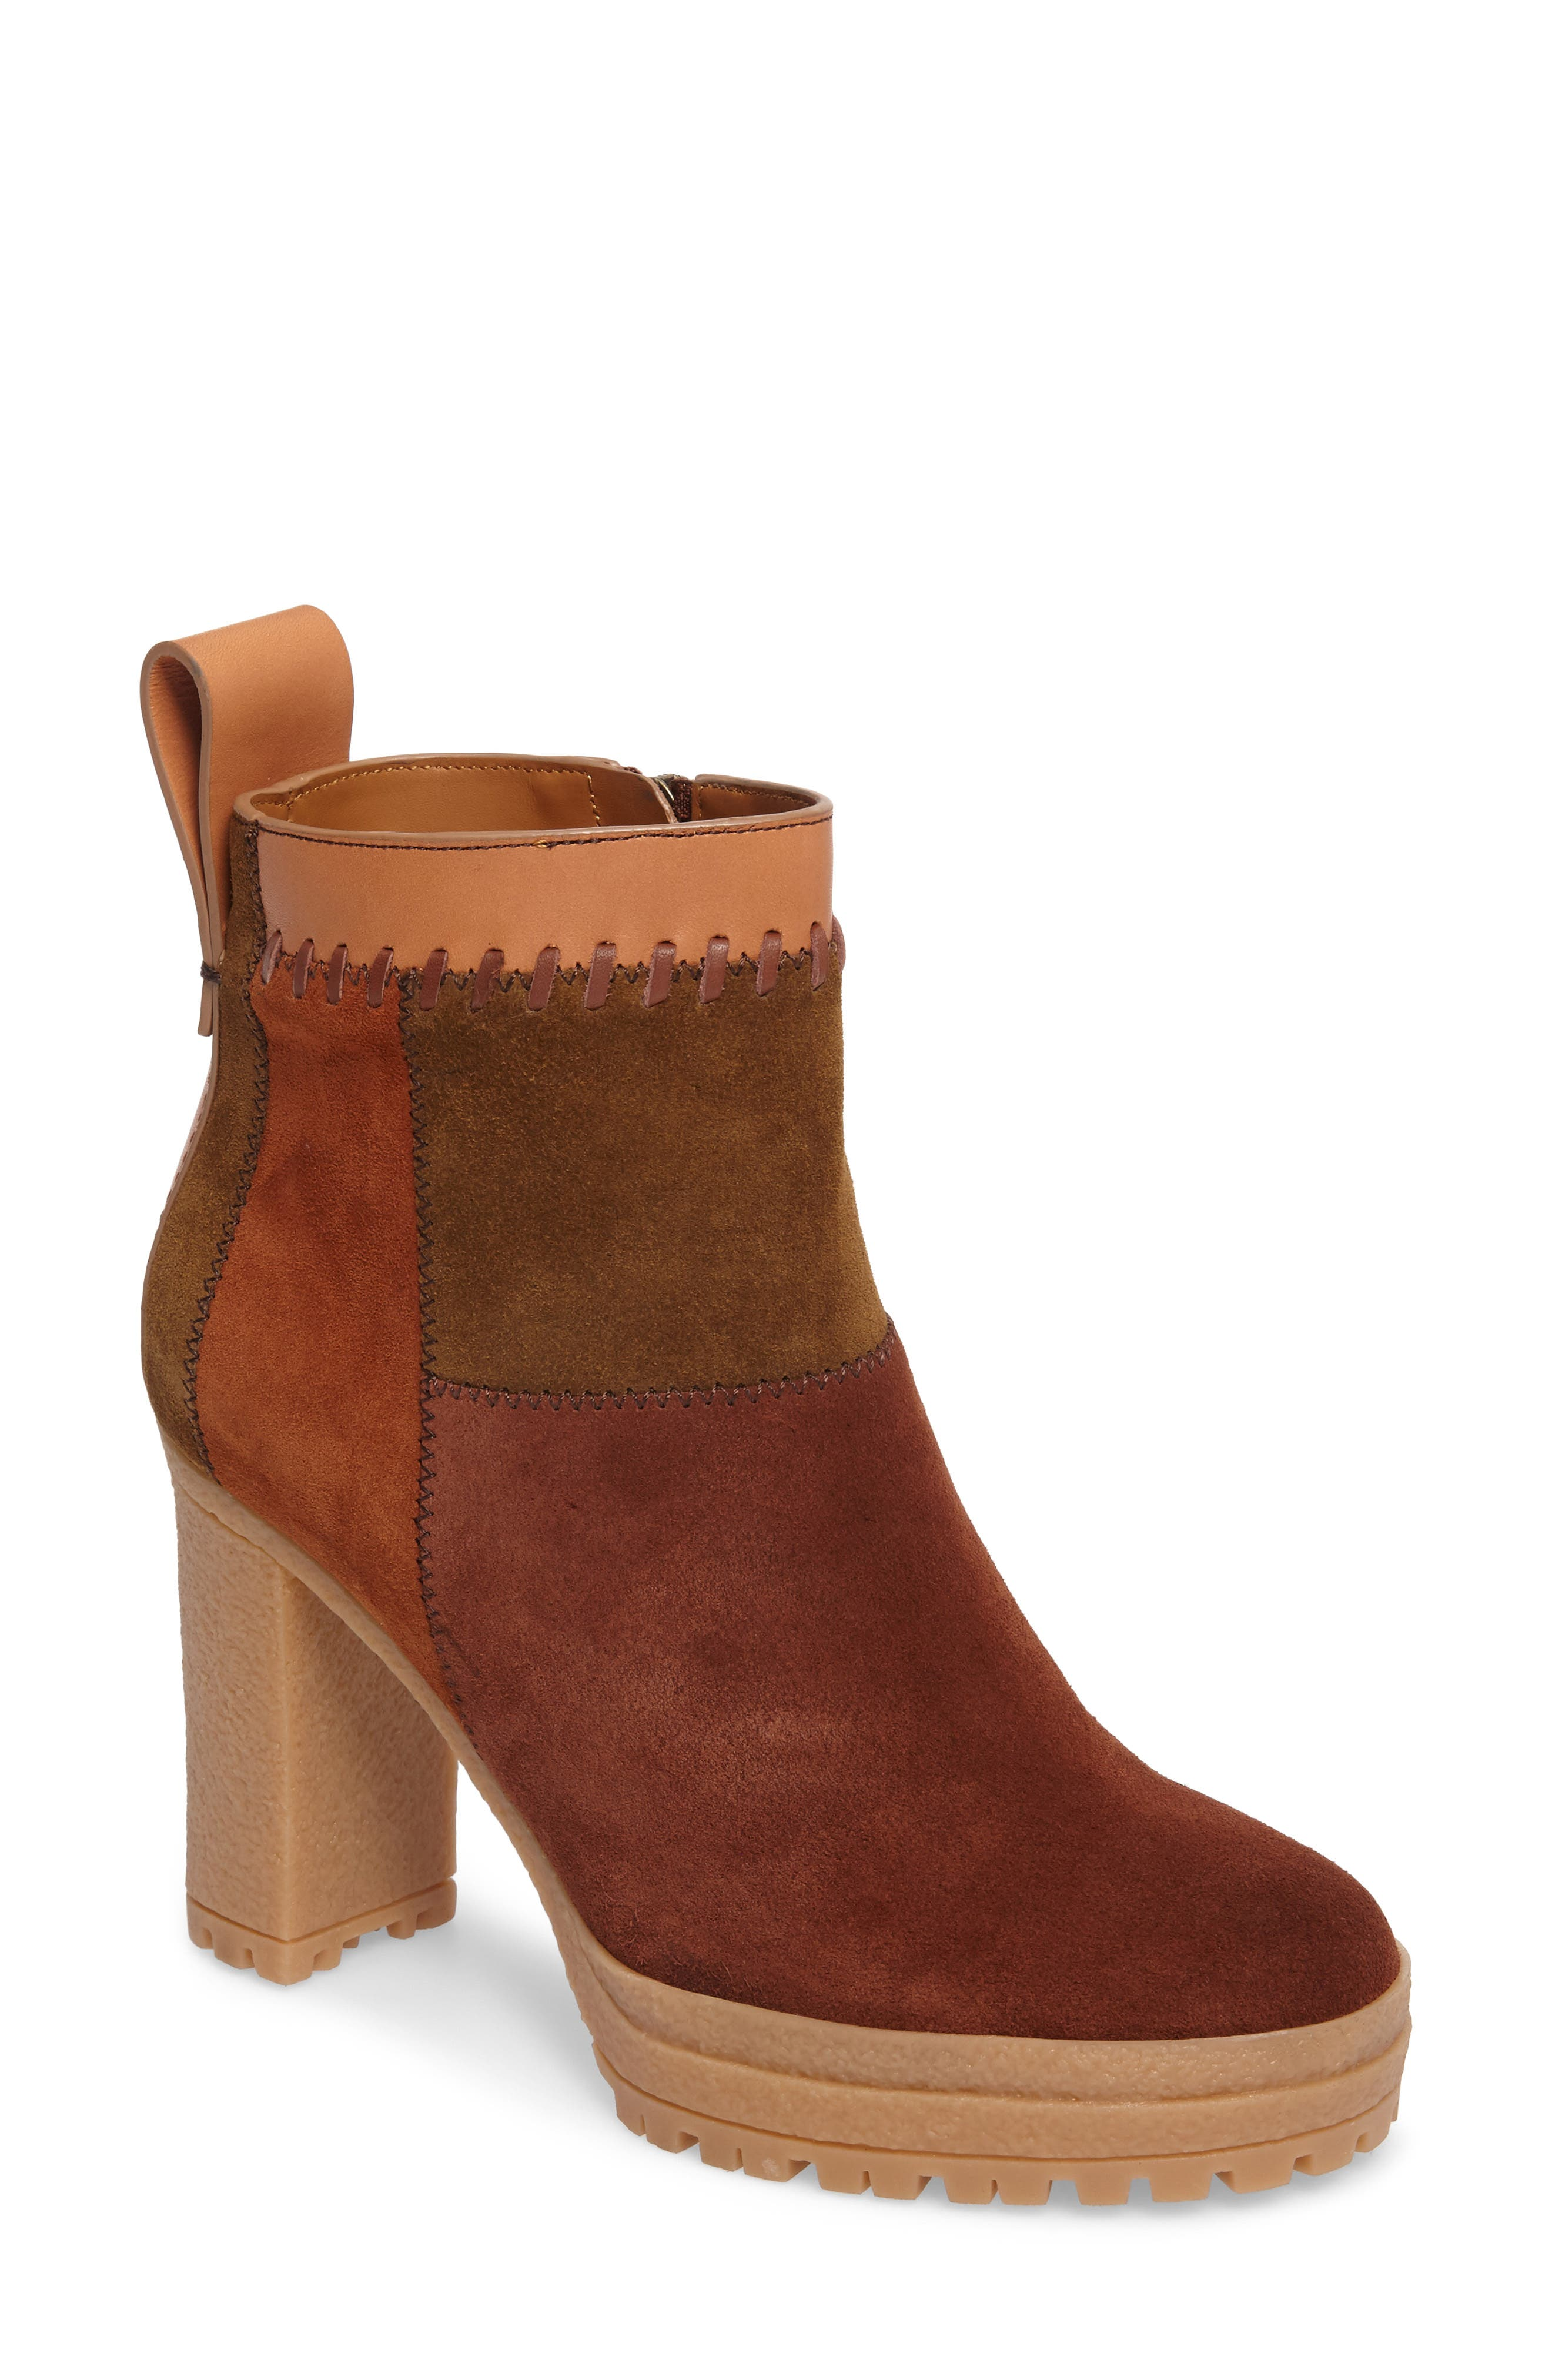 Polina Patchwork Bootie,                             Main thumbnail 1, color,                             Brown Multi